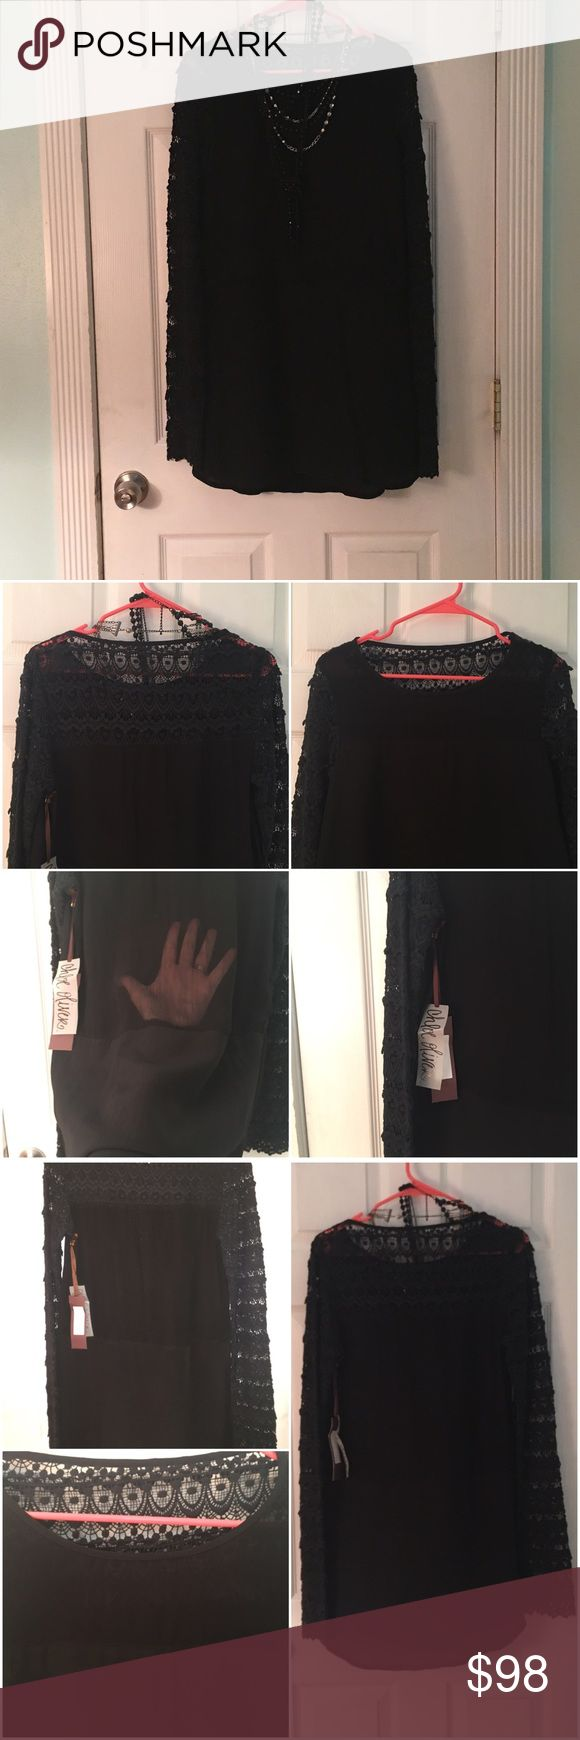 """🆕Chloe Oliver The Avery Long Sleeve Dress This dress is NWT! All black dress with black crochet sleeves and back yoke. Partially lined at bottom and in front. Pockets in front. Back panel is sheer. No size or any other care tags. Approximately 18"""" across the bust when laid flat and 18 1/2"""" across the waist when laid flat. Approximately 32 1/2"""" from shoulder to hem. Received as a gift. Unsure of exact size. Seems similar to a small or 4-6 dress size. I'm a 4 and it is slightly loose on me…"""